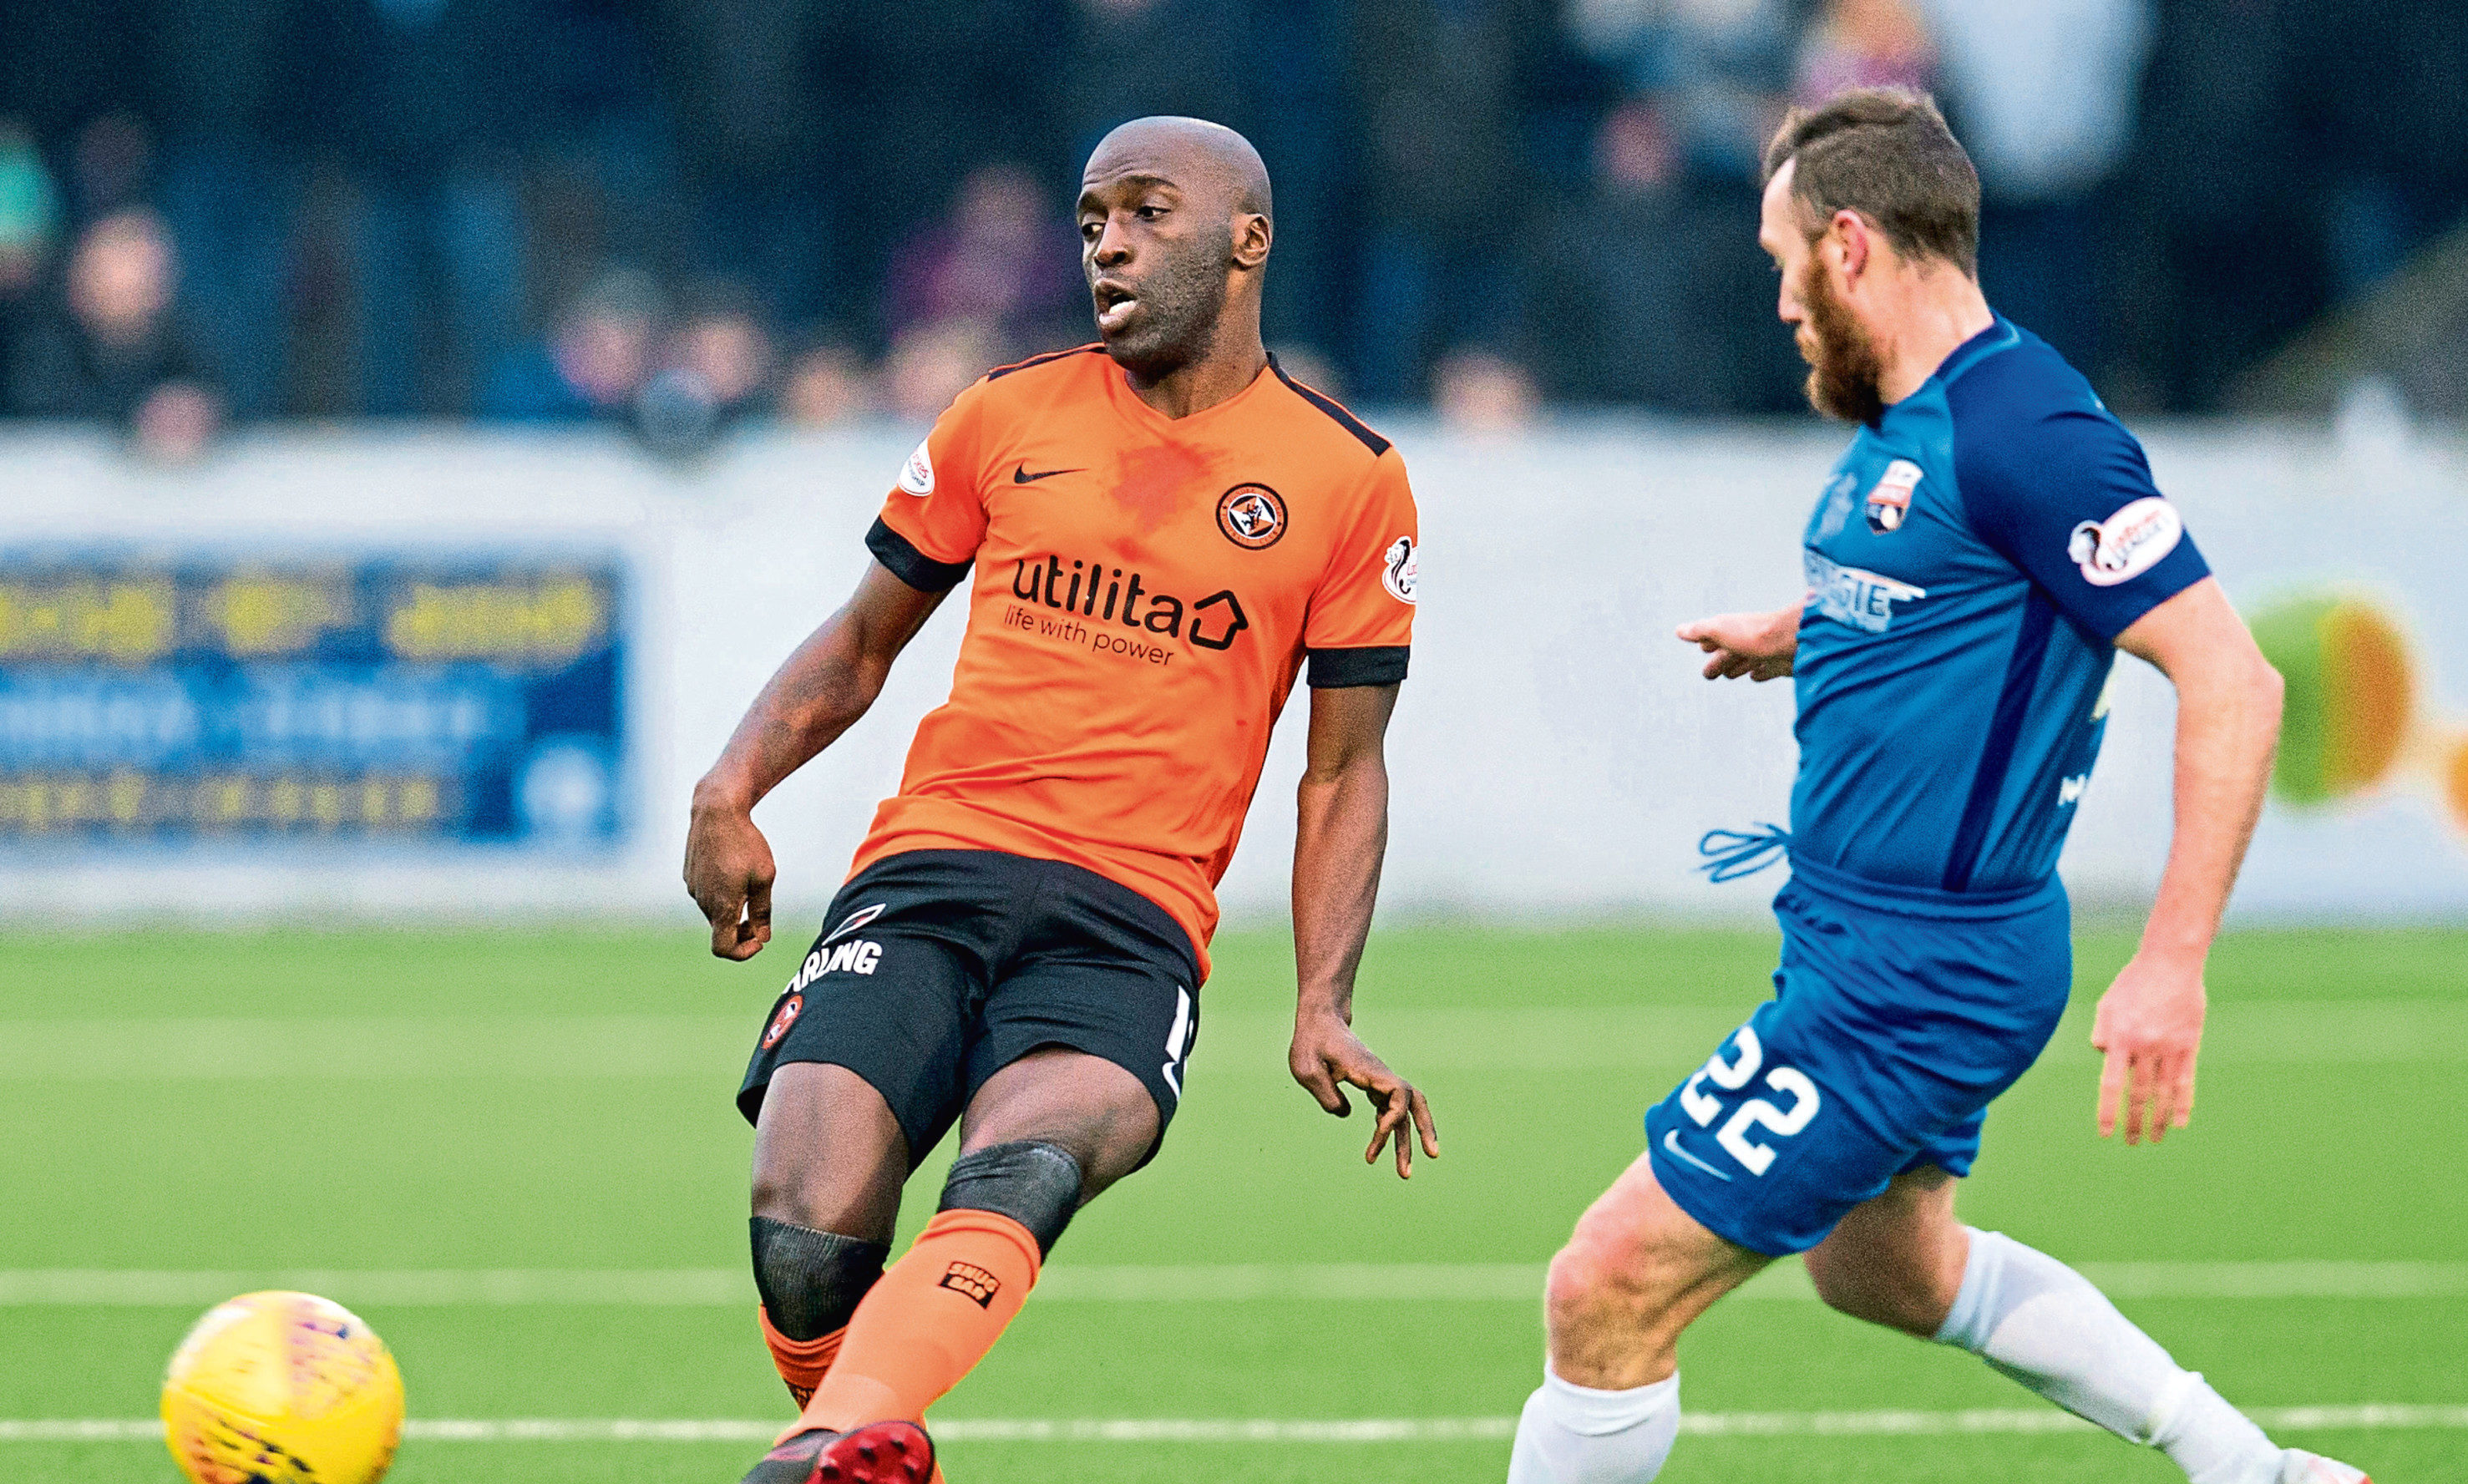 Senegalese midfielder Morgaro Gomis made his third Dundee United debut                in their 4-0 Scottish Cup fourth-round win over Montrose at Links Park on Saturday